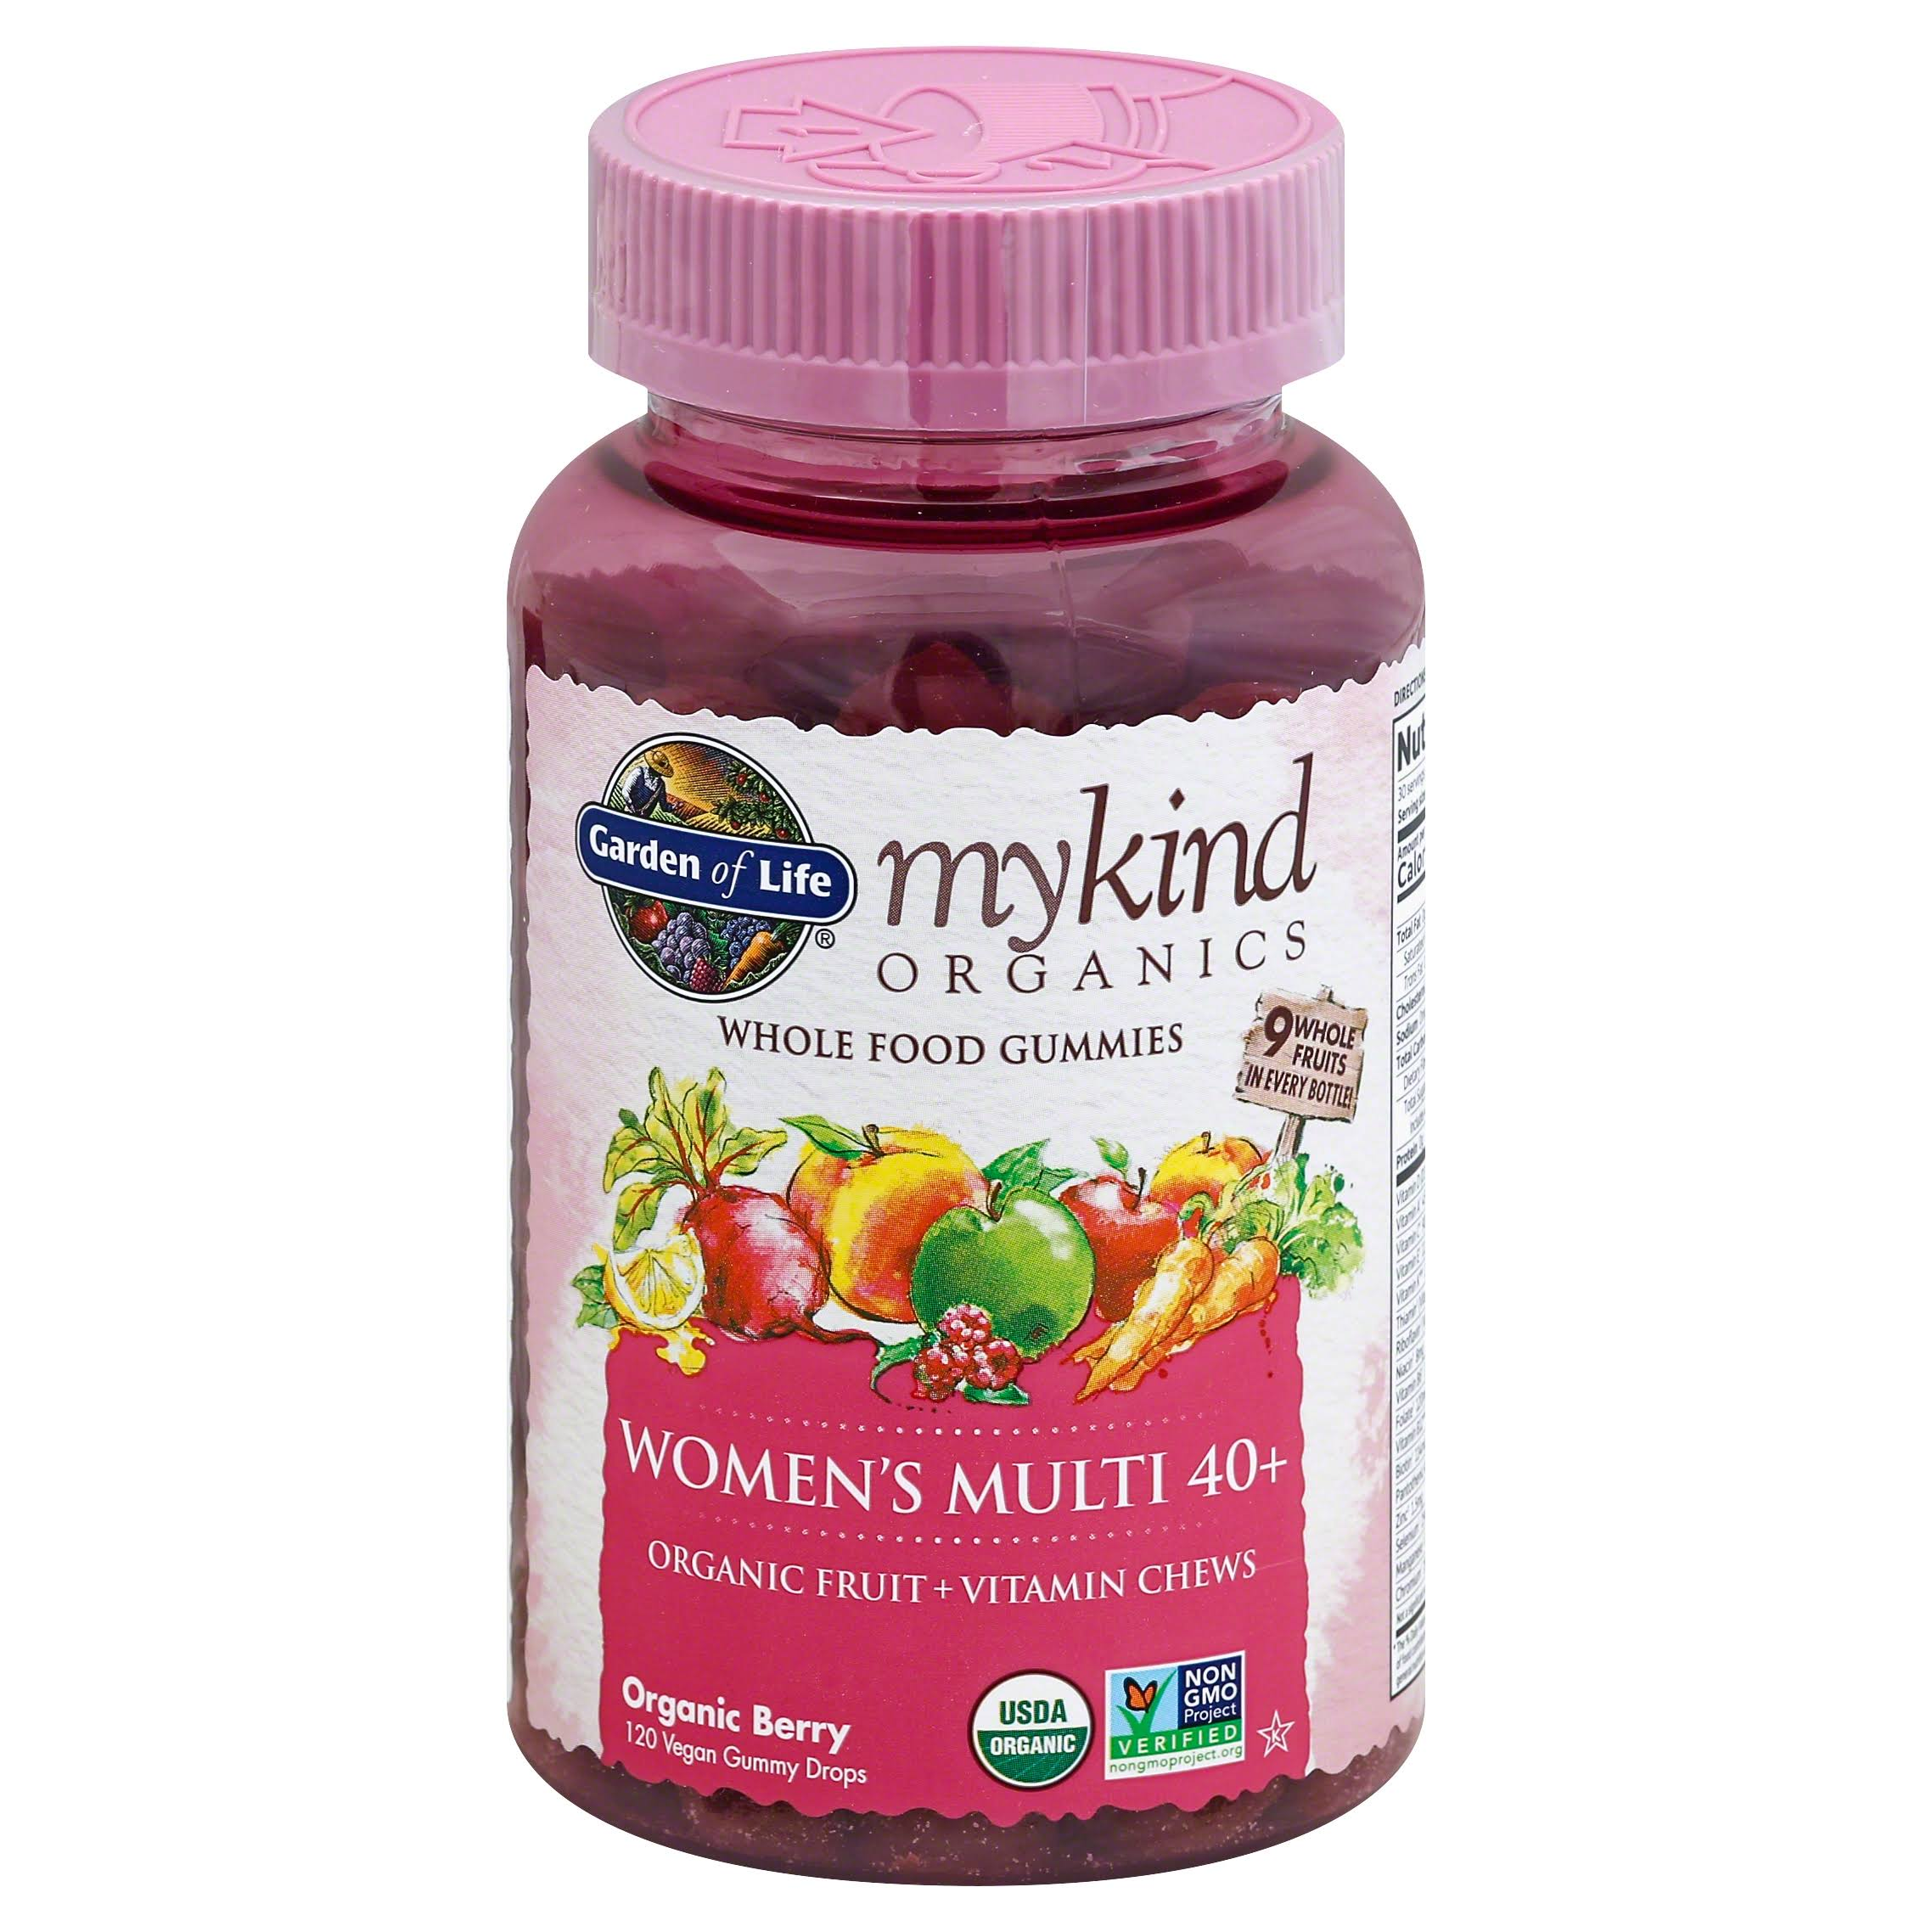 Garden of Life Mykind Organics Women's Multi 40+ Whole Food Gummies - 120 Vegan Gummy Drops, Berry